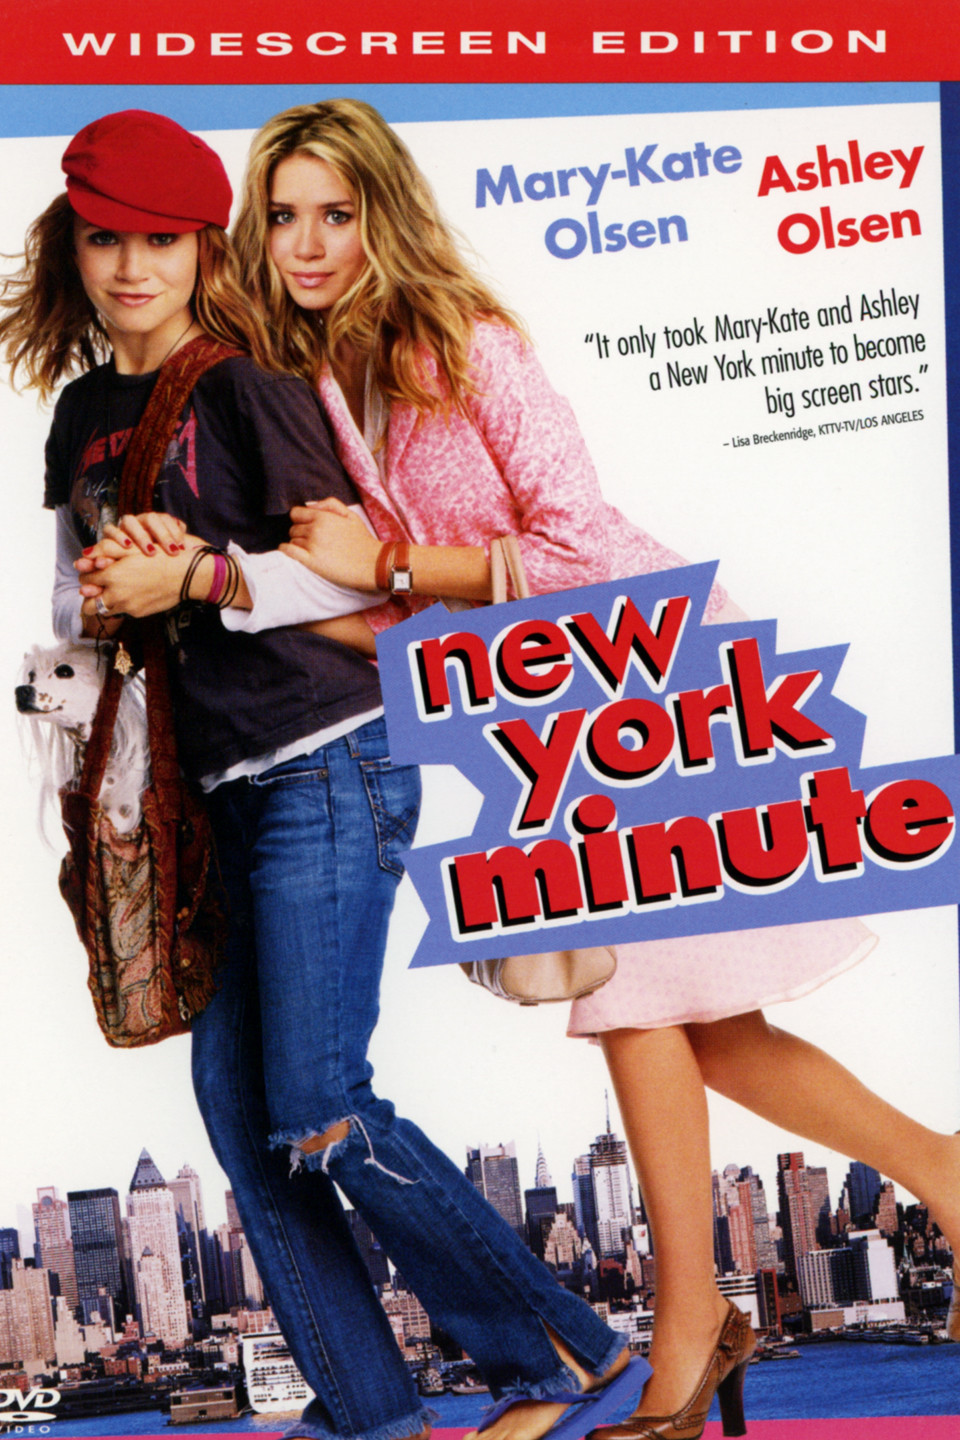 Eight minute dating new york